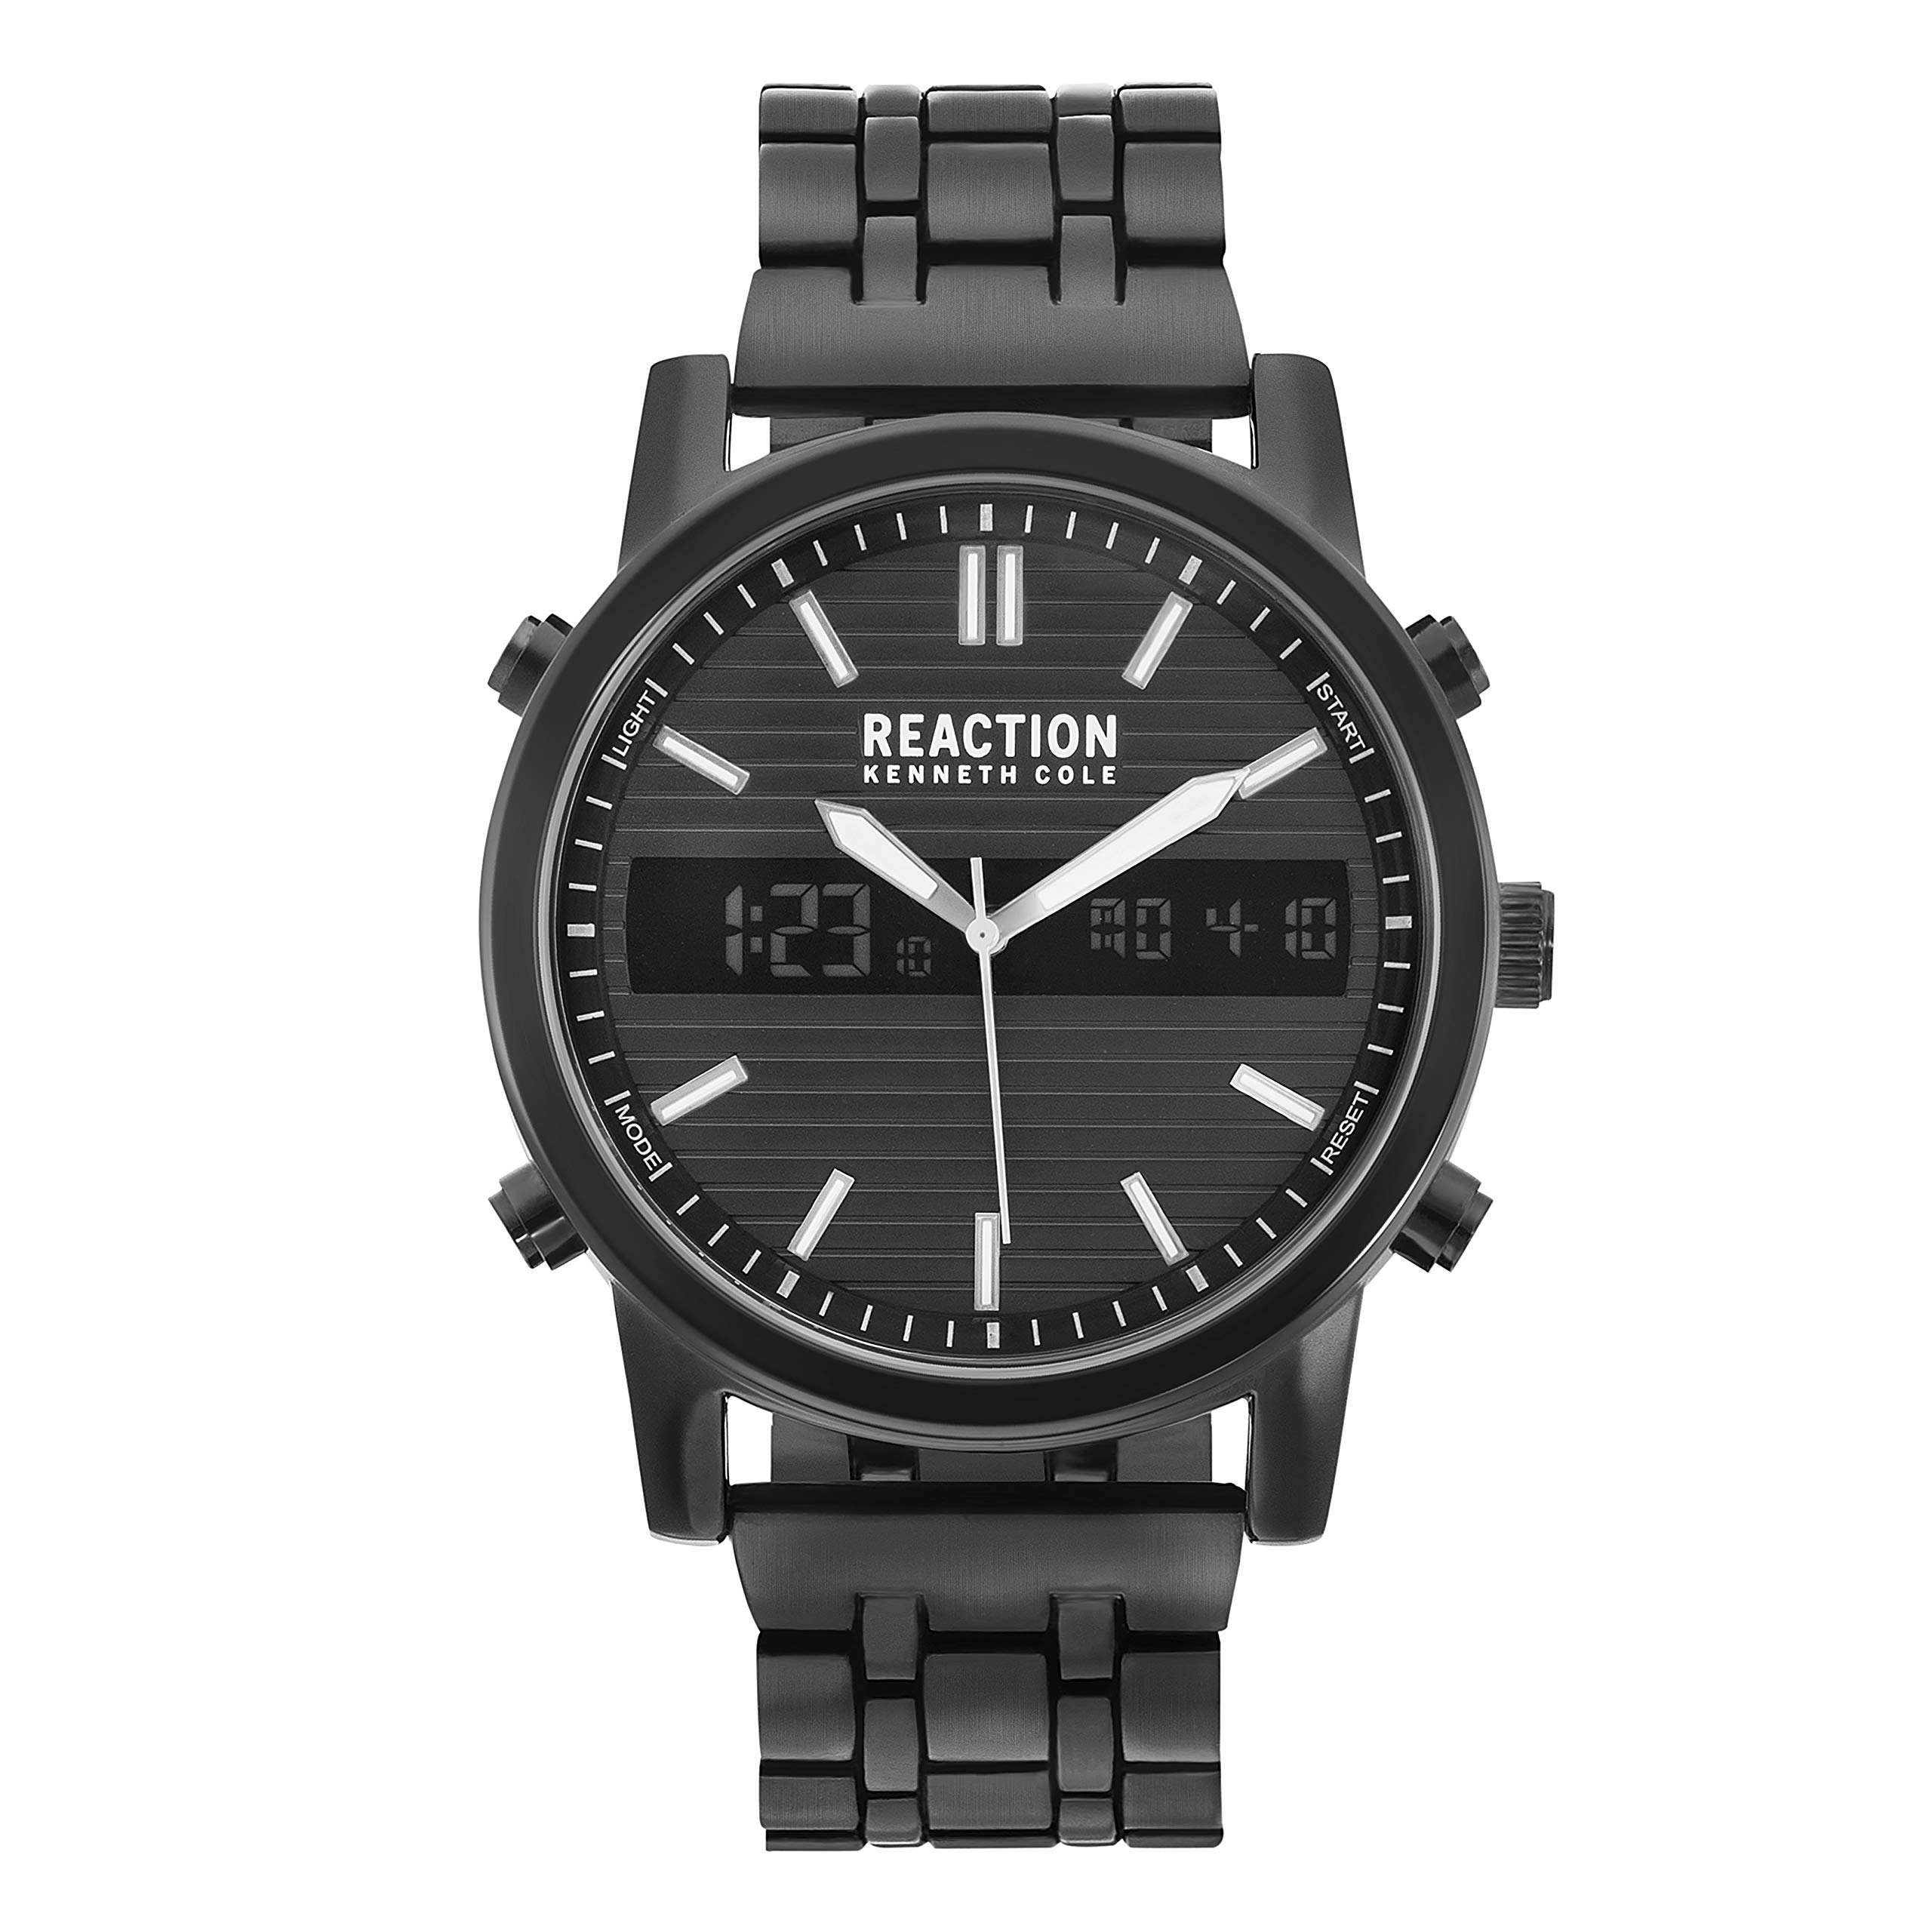 Kenneth Cole REACTION Men's ANA-Digit Quartz Watch with Stainless-Steel Strap, Black, 22 (Model: RK50549004) by Kenneth Cole REACTION